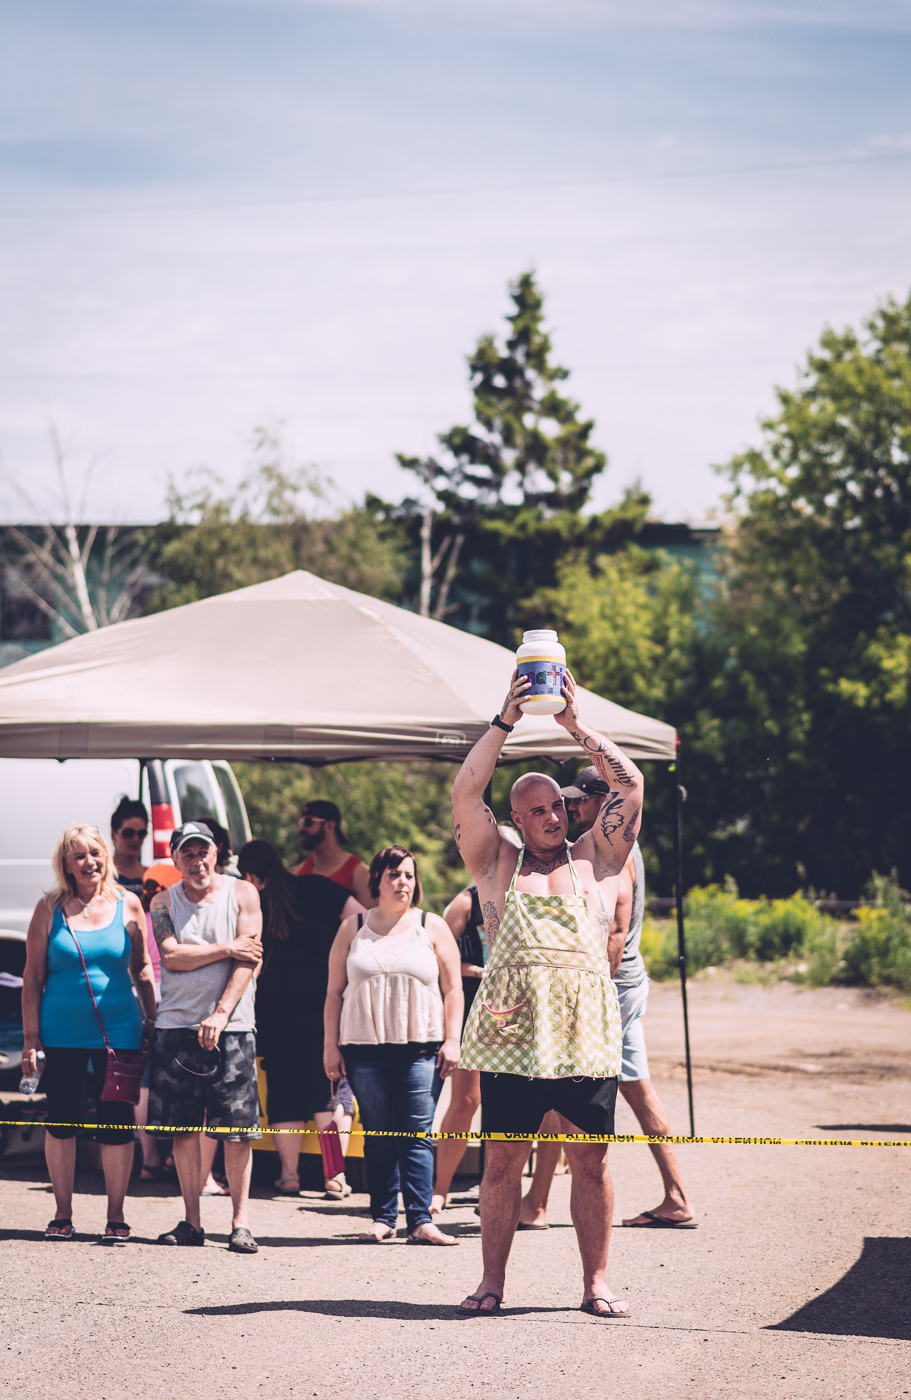 strongman_2016_blog1.jpg